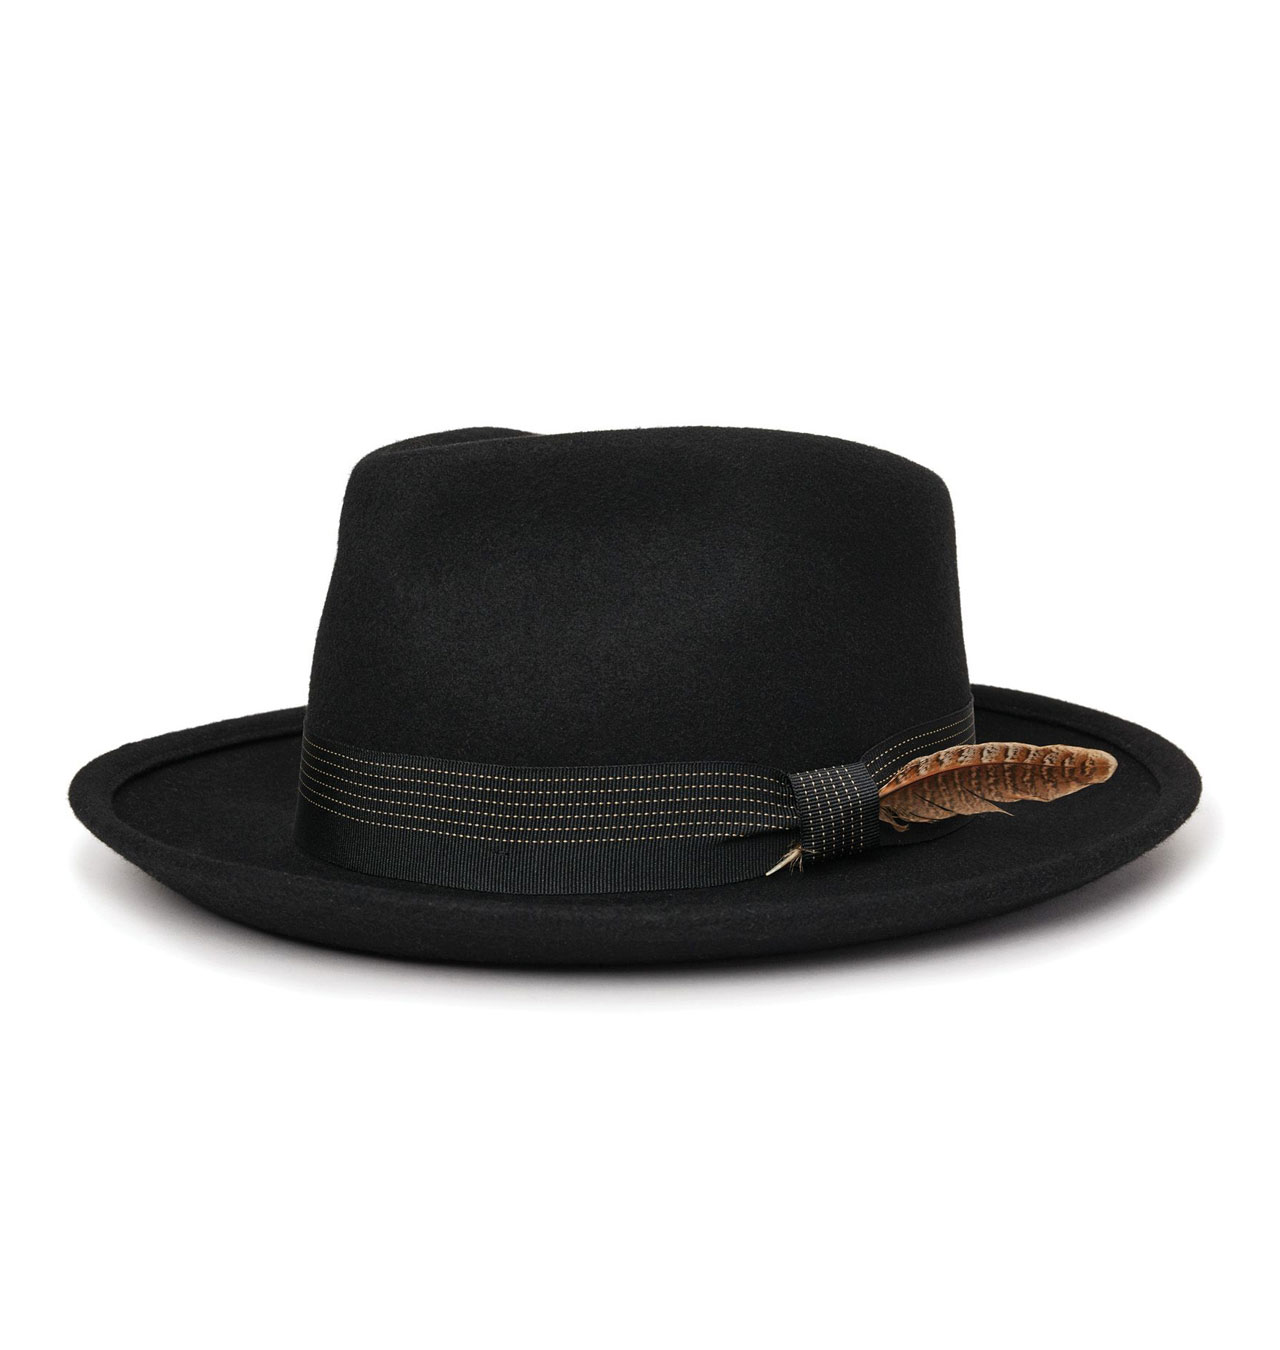 Brixton---Swindle-II-Fedora-Hat---Black